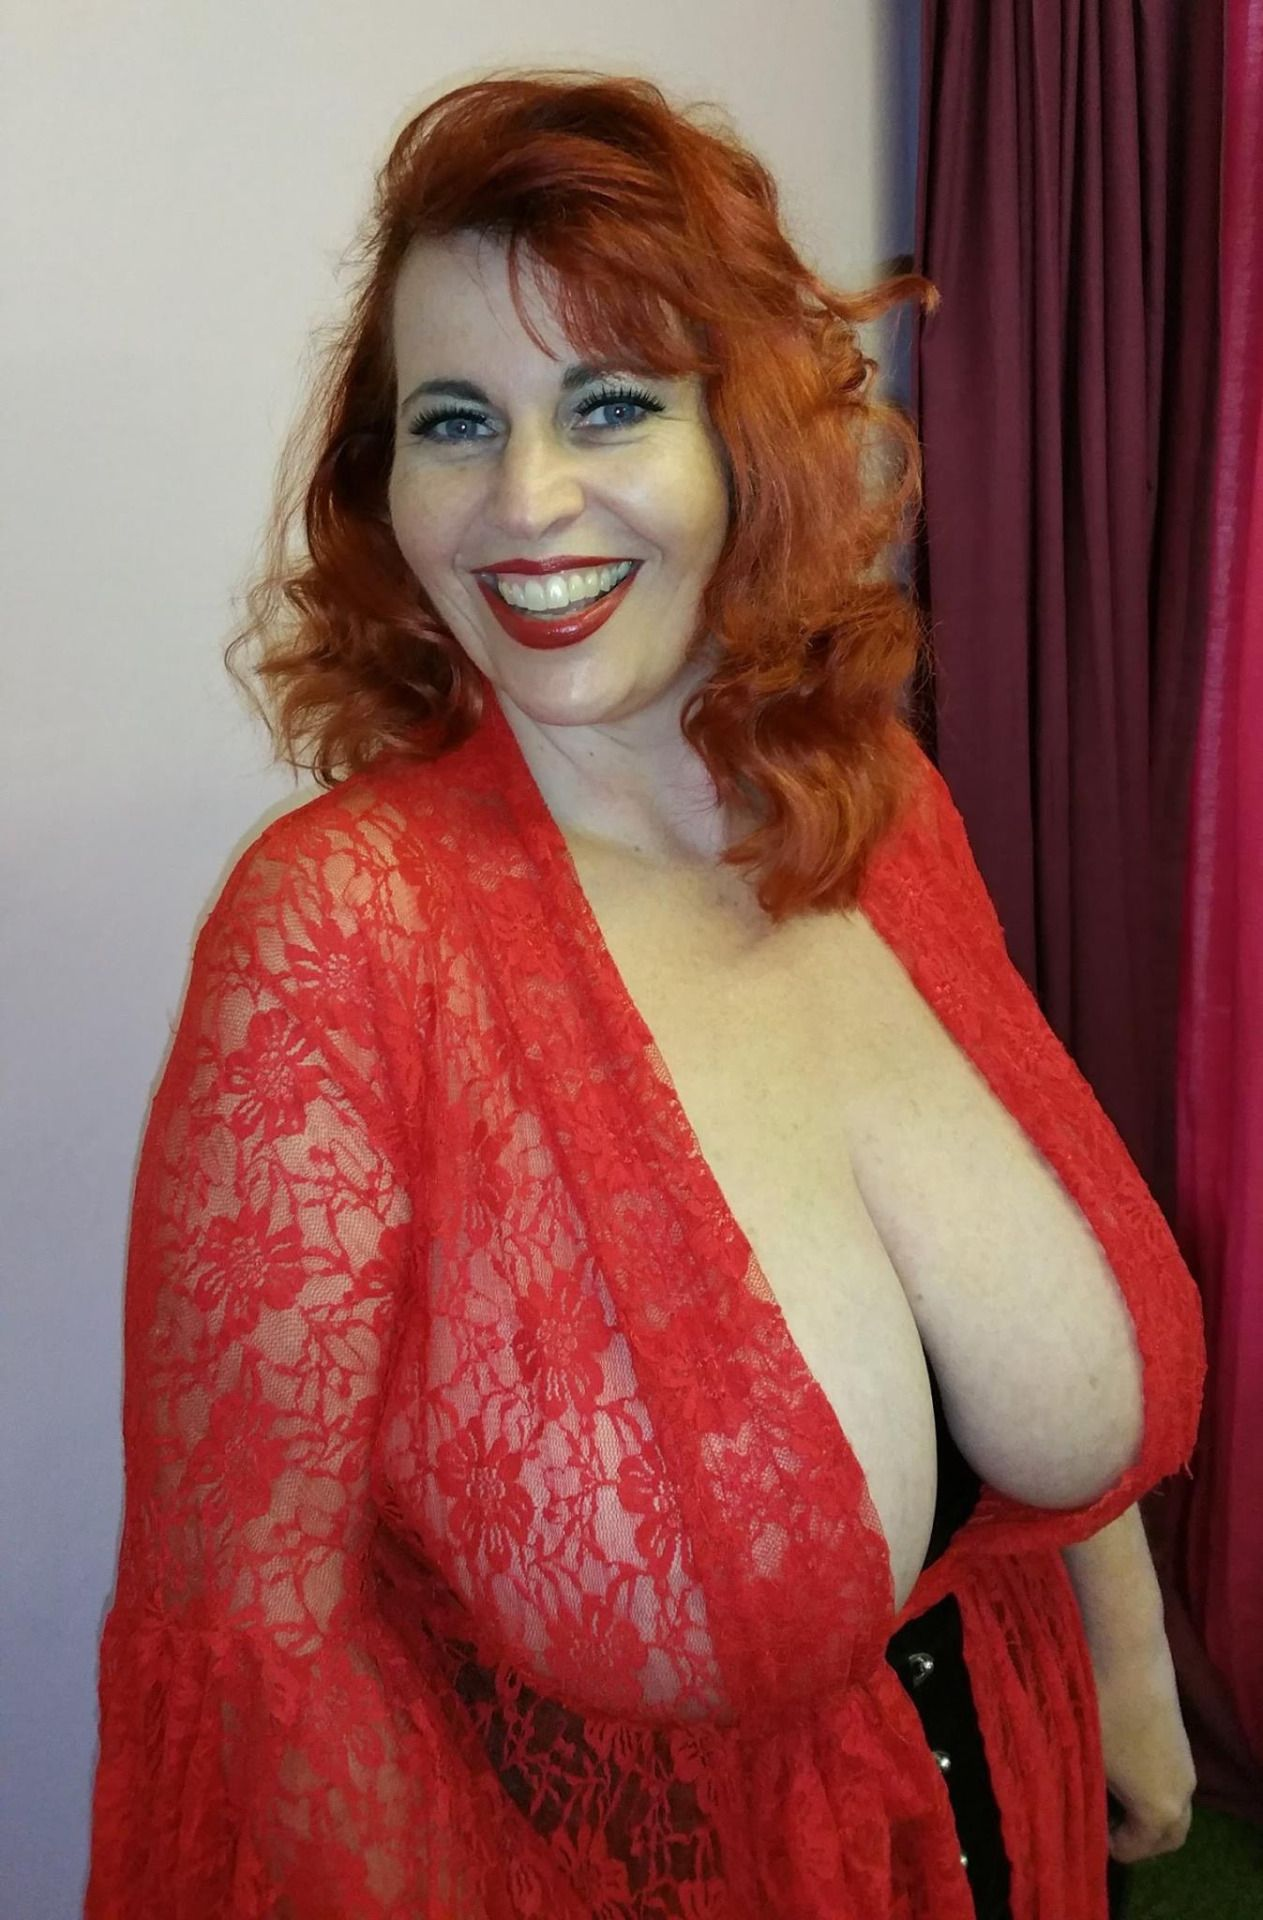 Lost when busty buxom heavy top woman real man